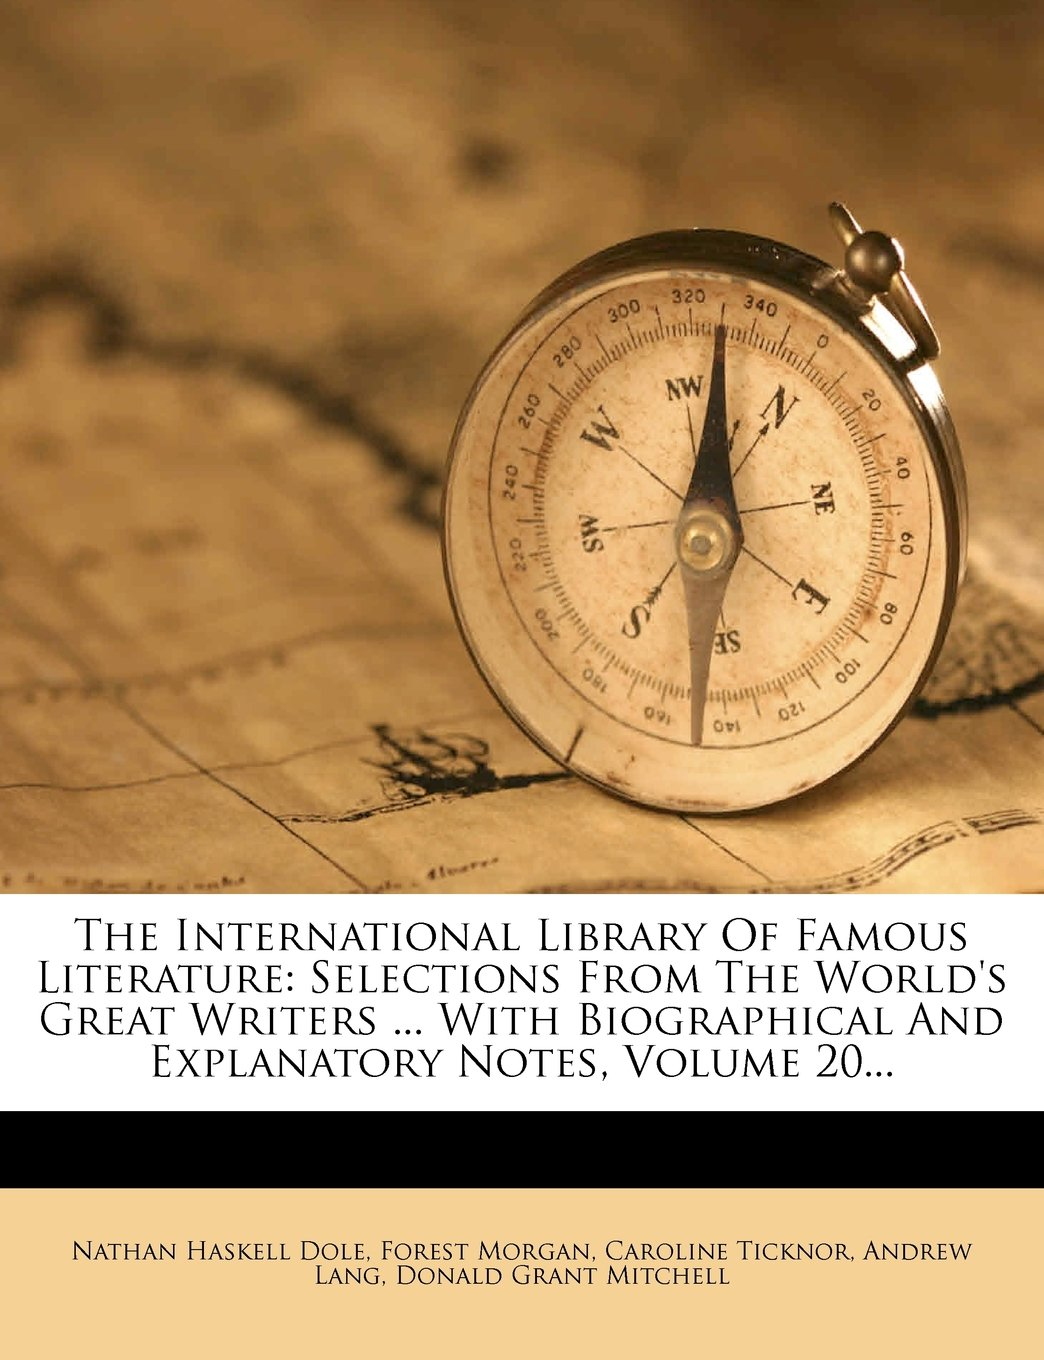 Download The International Library Of Famous Literature: Selections From The World's Great Writers ... With Biographical And Explanatory Notes, Volume 20... pdf epub